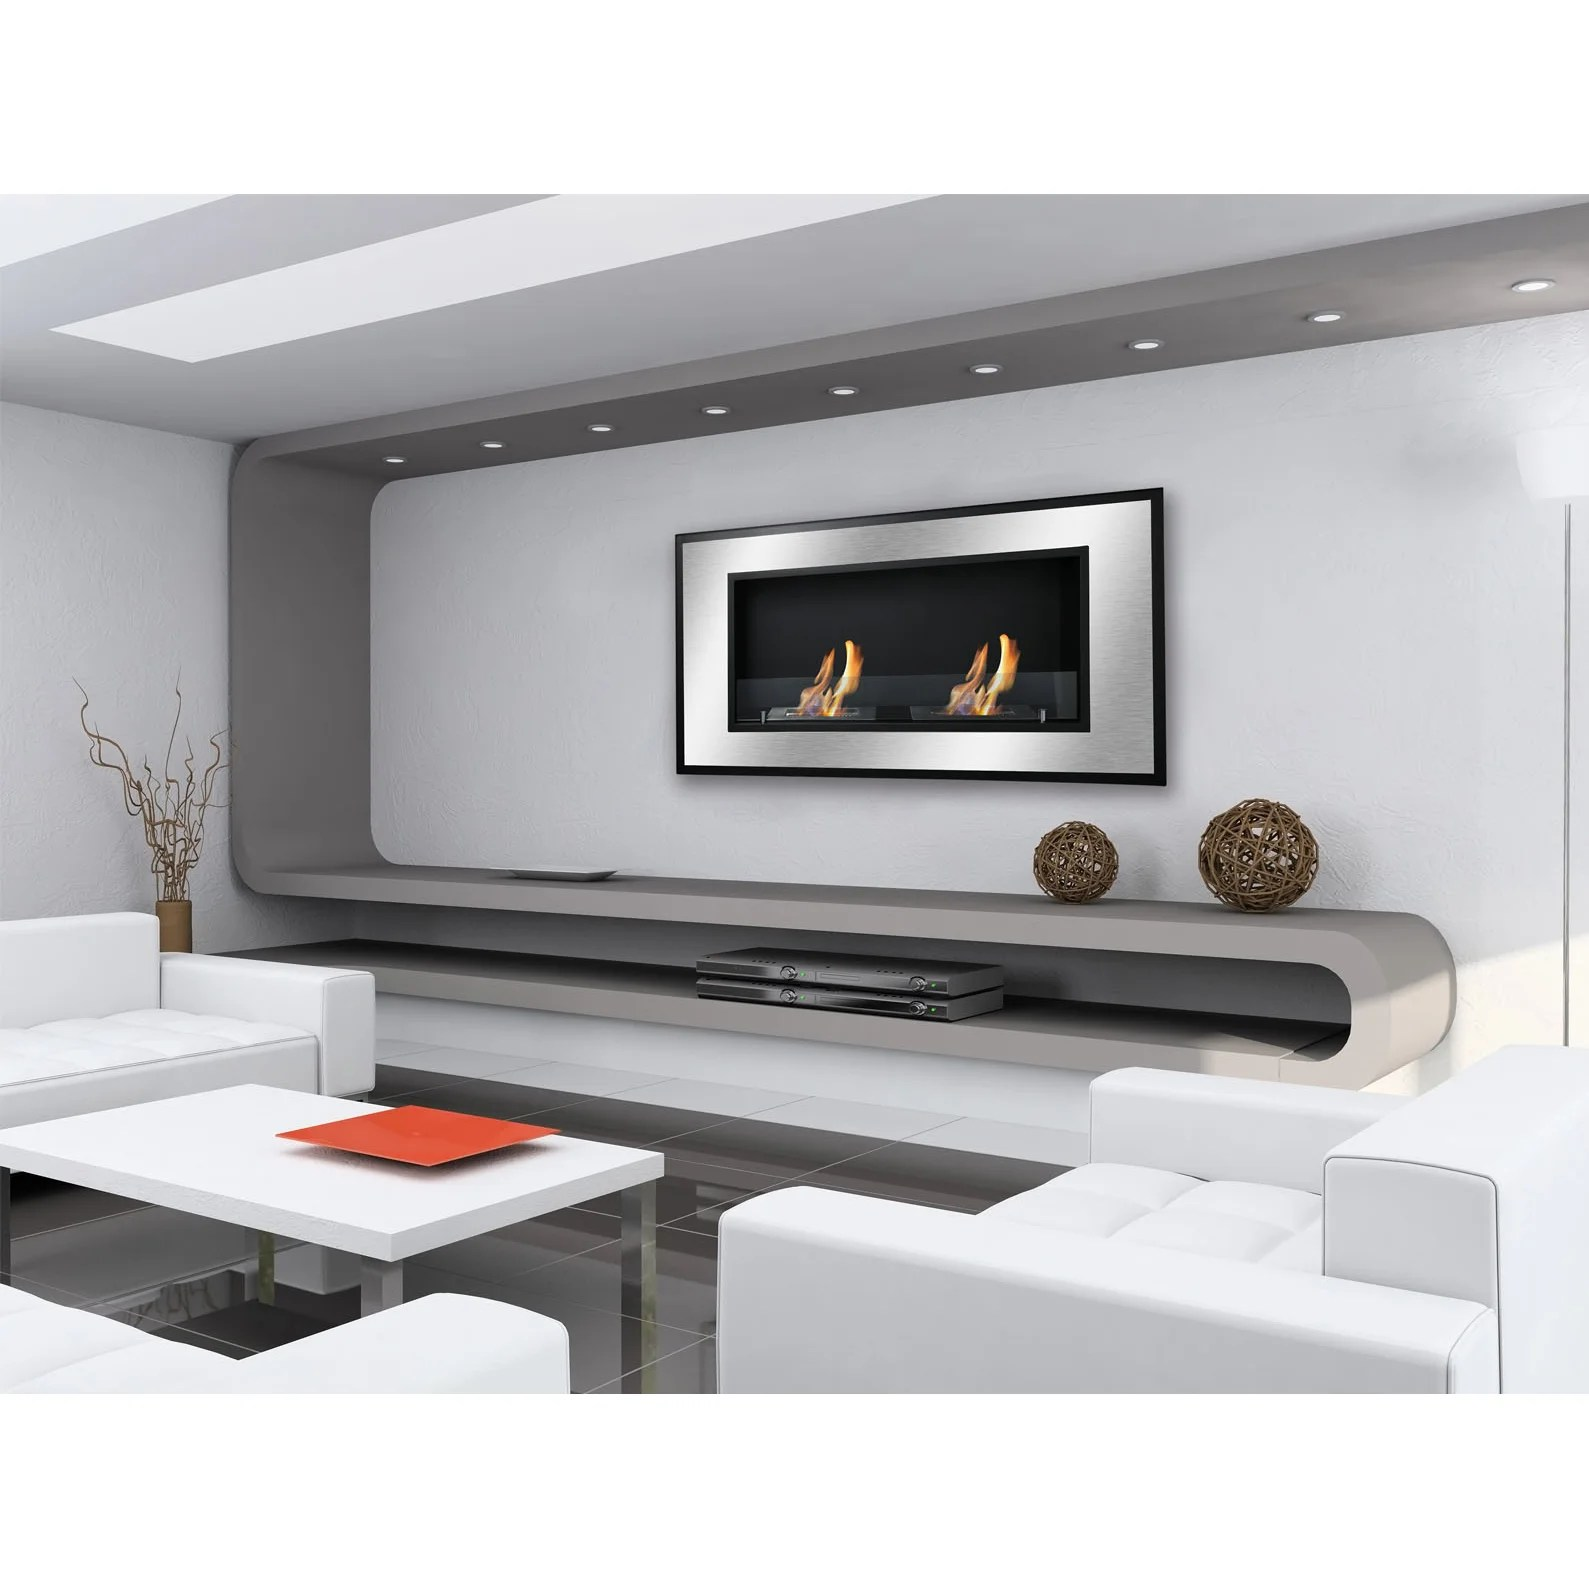 Ventless Wall Mount Gas Fireplace Ignis Bellezza Recessed Ventless Wall Mount Ethanol